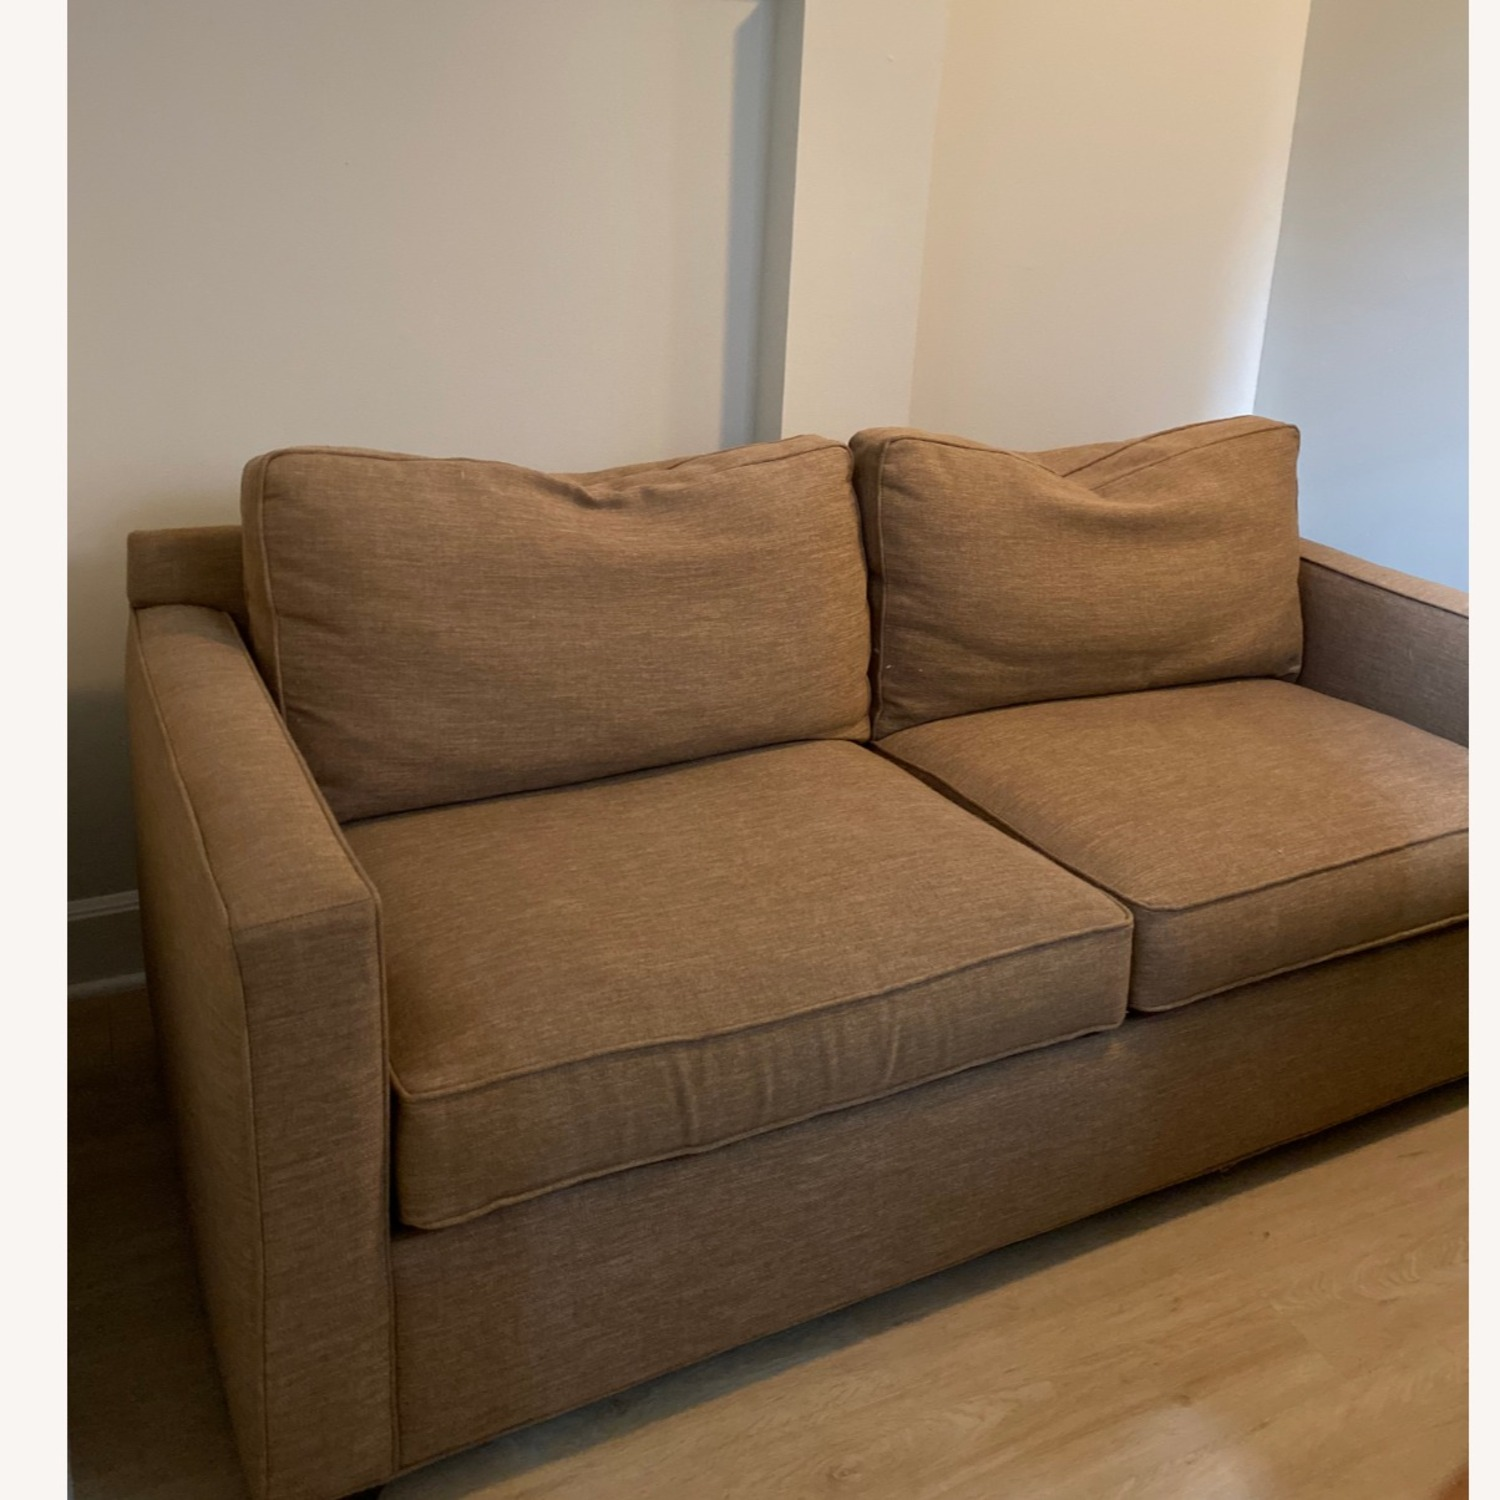 Crate & Barrel Davis Sofa - image-1